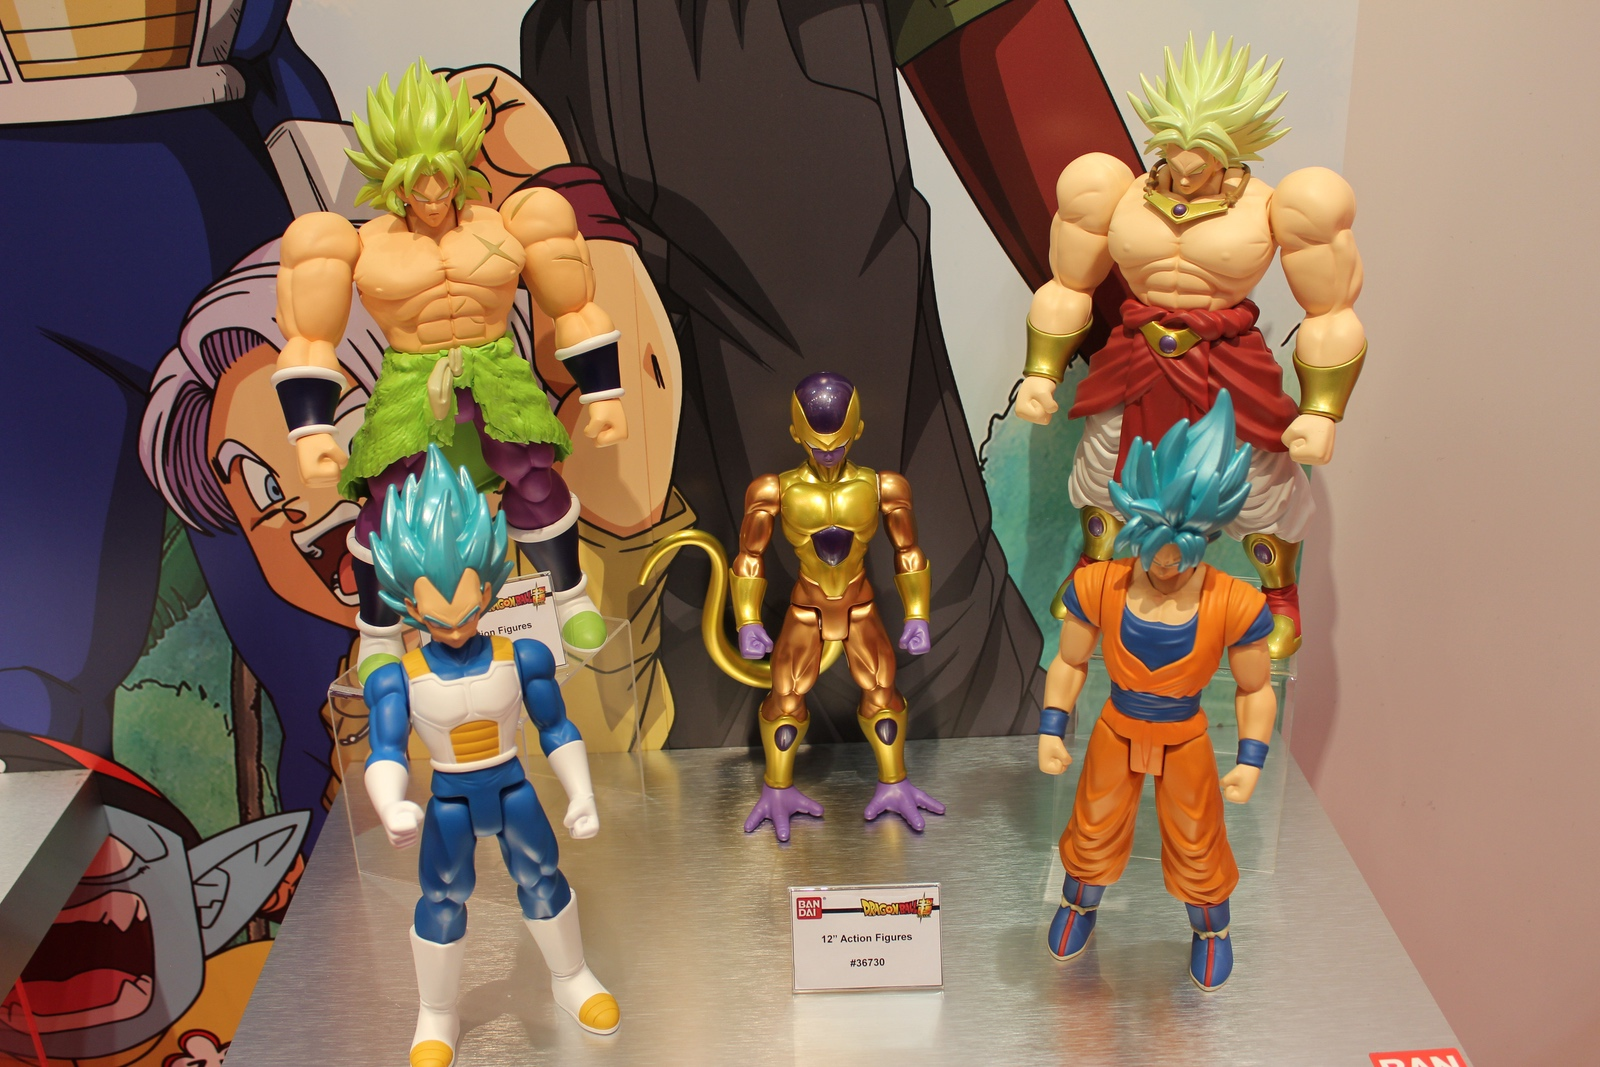 Bandai At Toy Fair Dragon Ball Z Godzilla Disney And More The